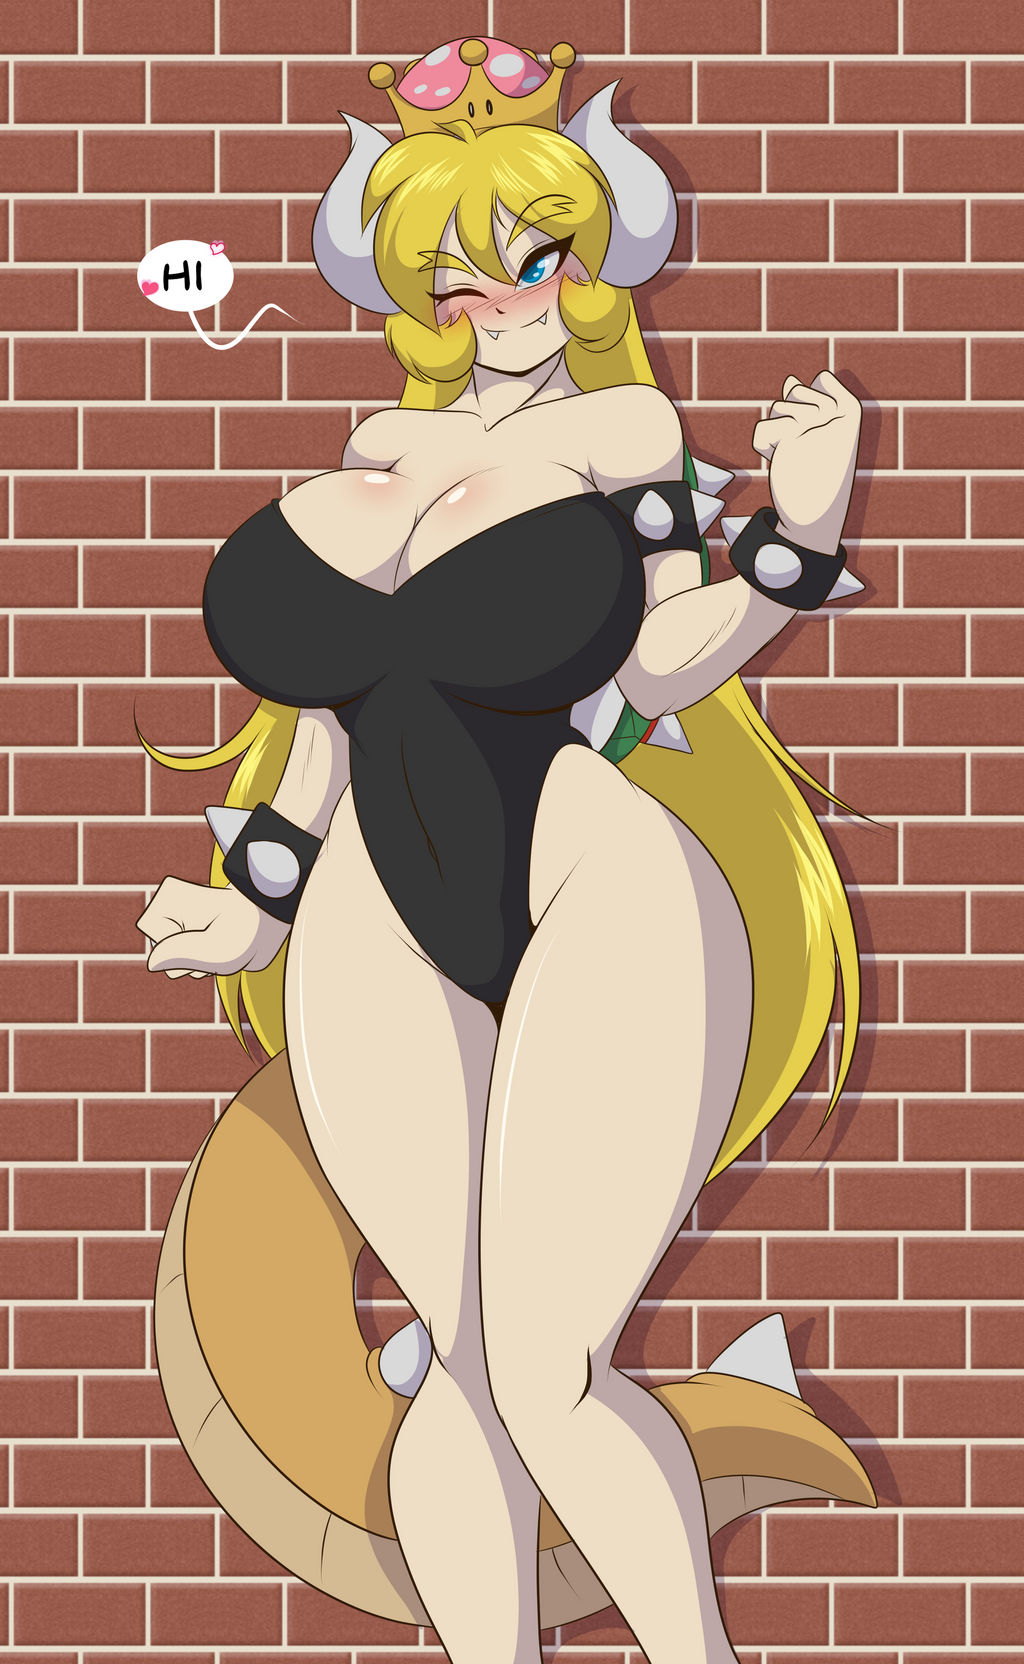 Bowsette on the Scene by Mastergodai